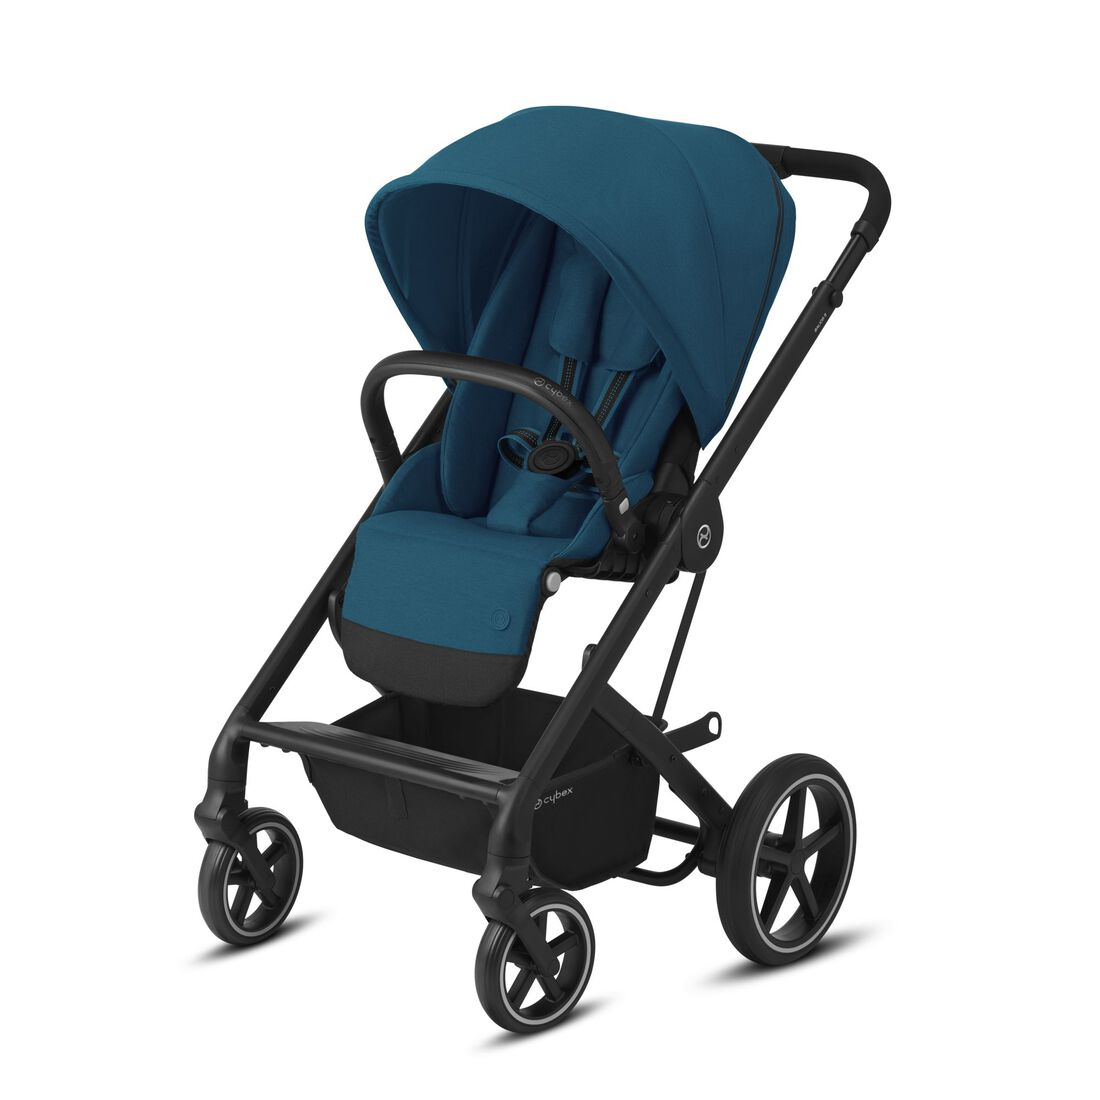 CYBEX Balios S Lux - River Blue (Black Frame) in River Blue (Black Frame) large image number 1